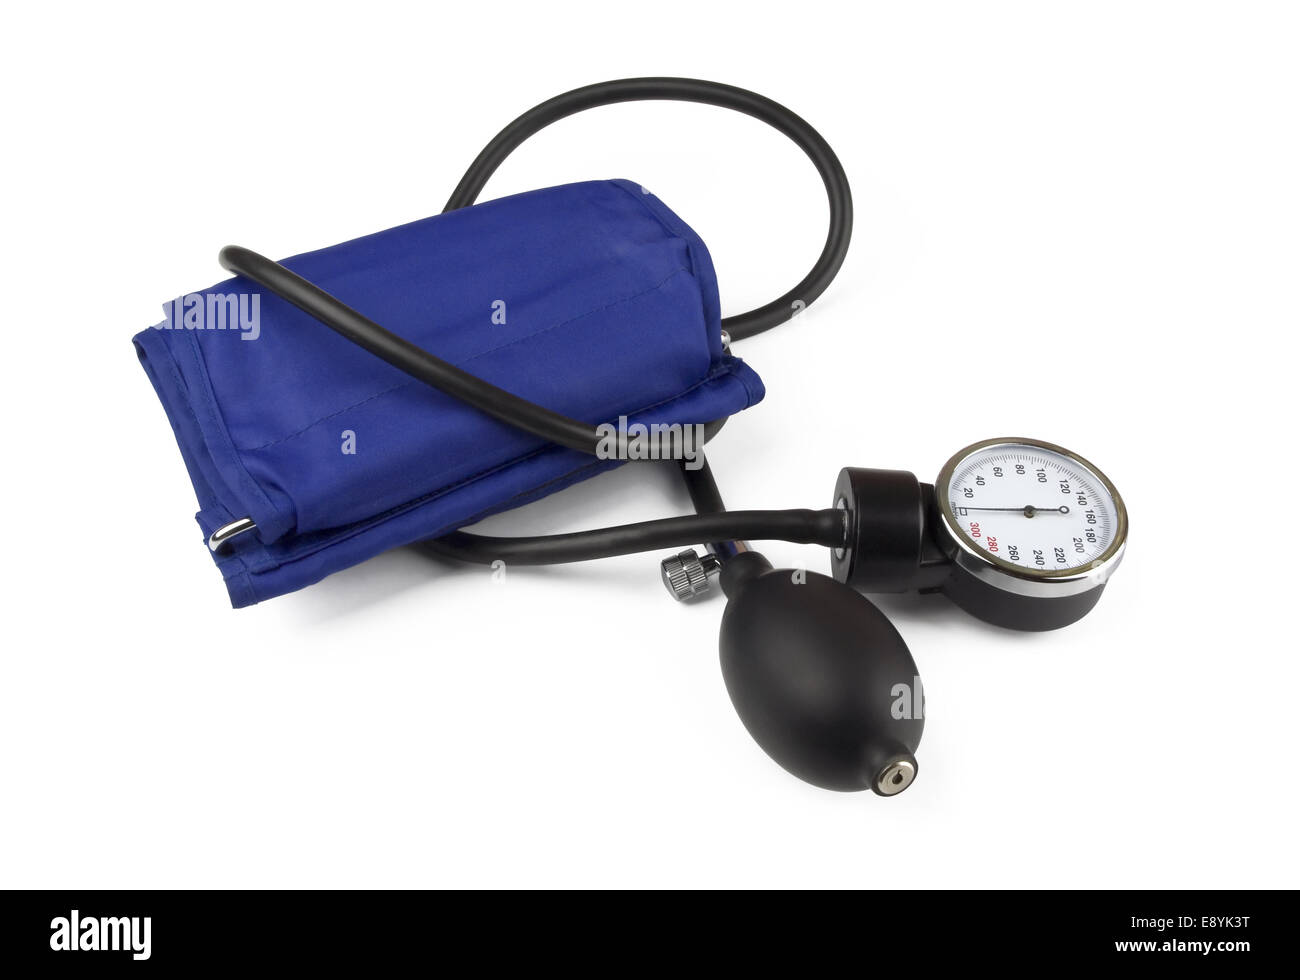 Medical sphygmomanometer - Stock Image